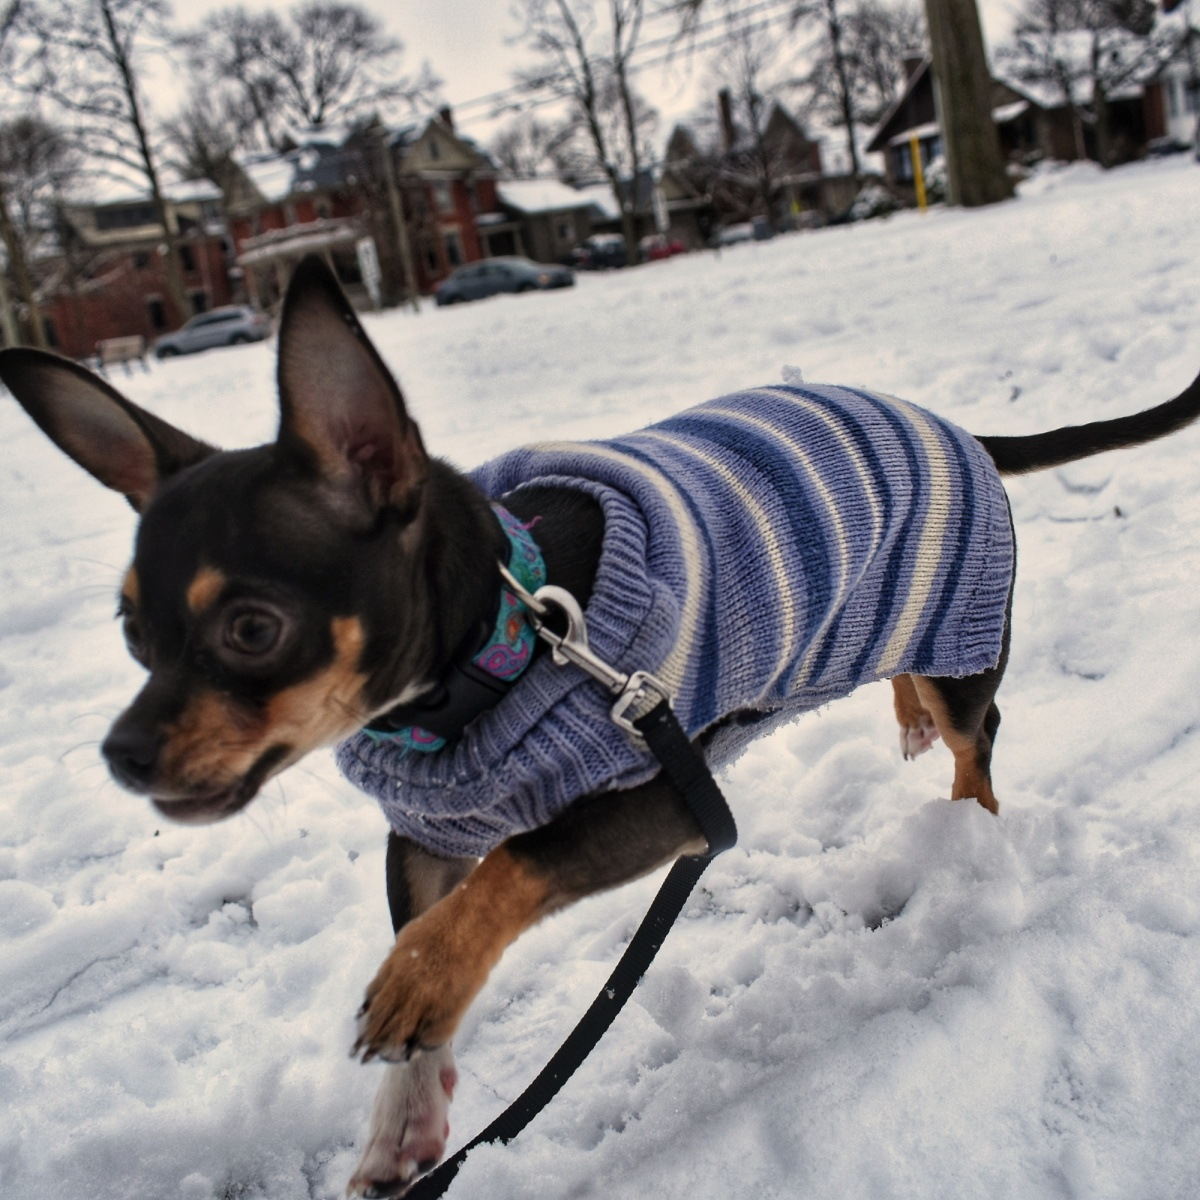 Chihuahua running in the snow wearing a sweater